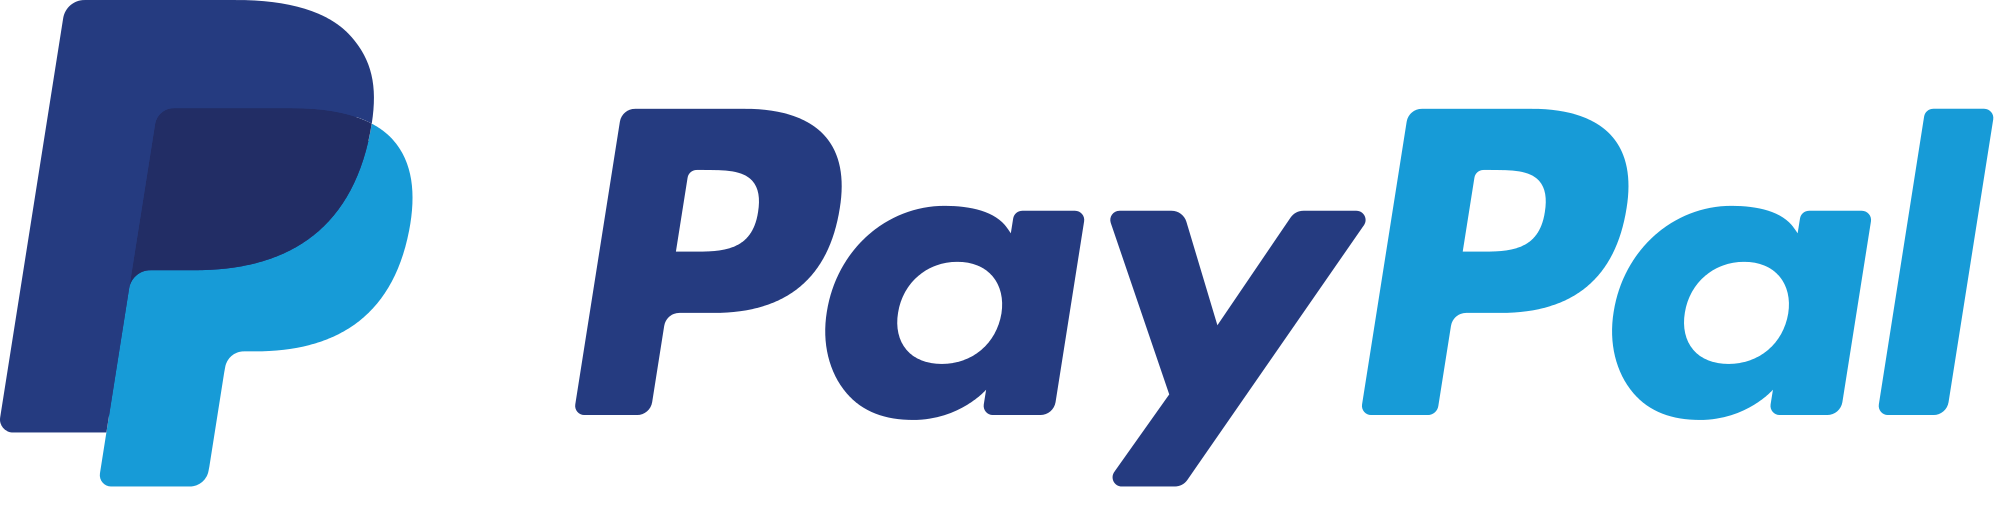 paypal_svg.png